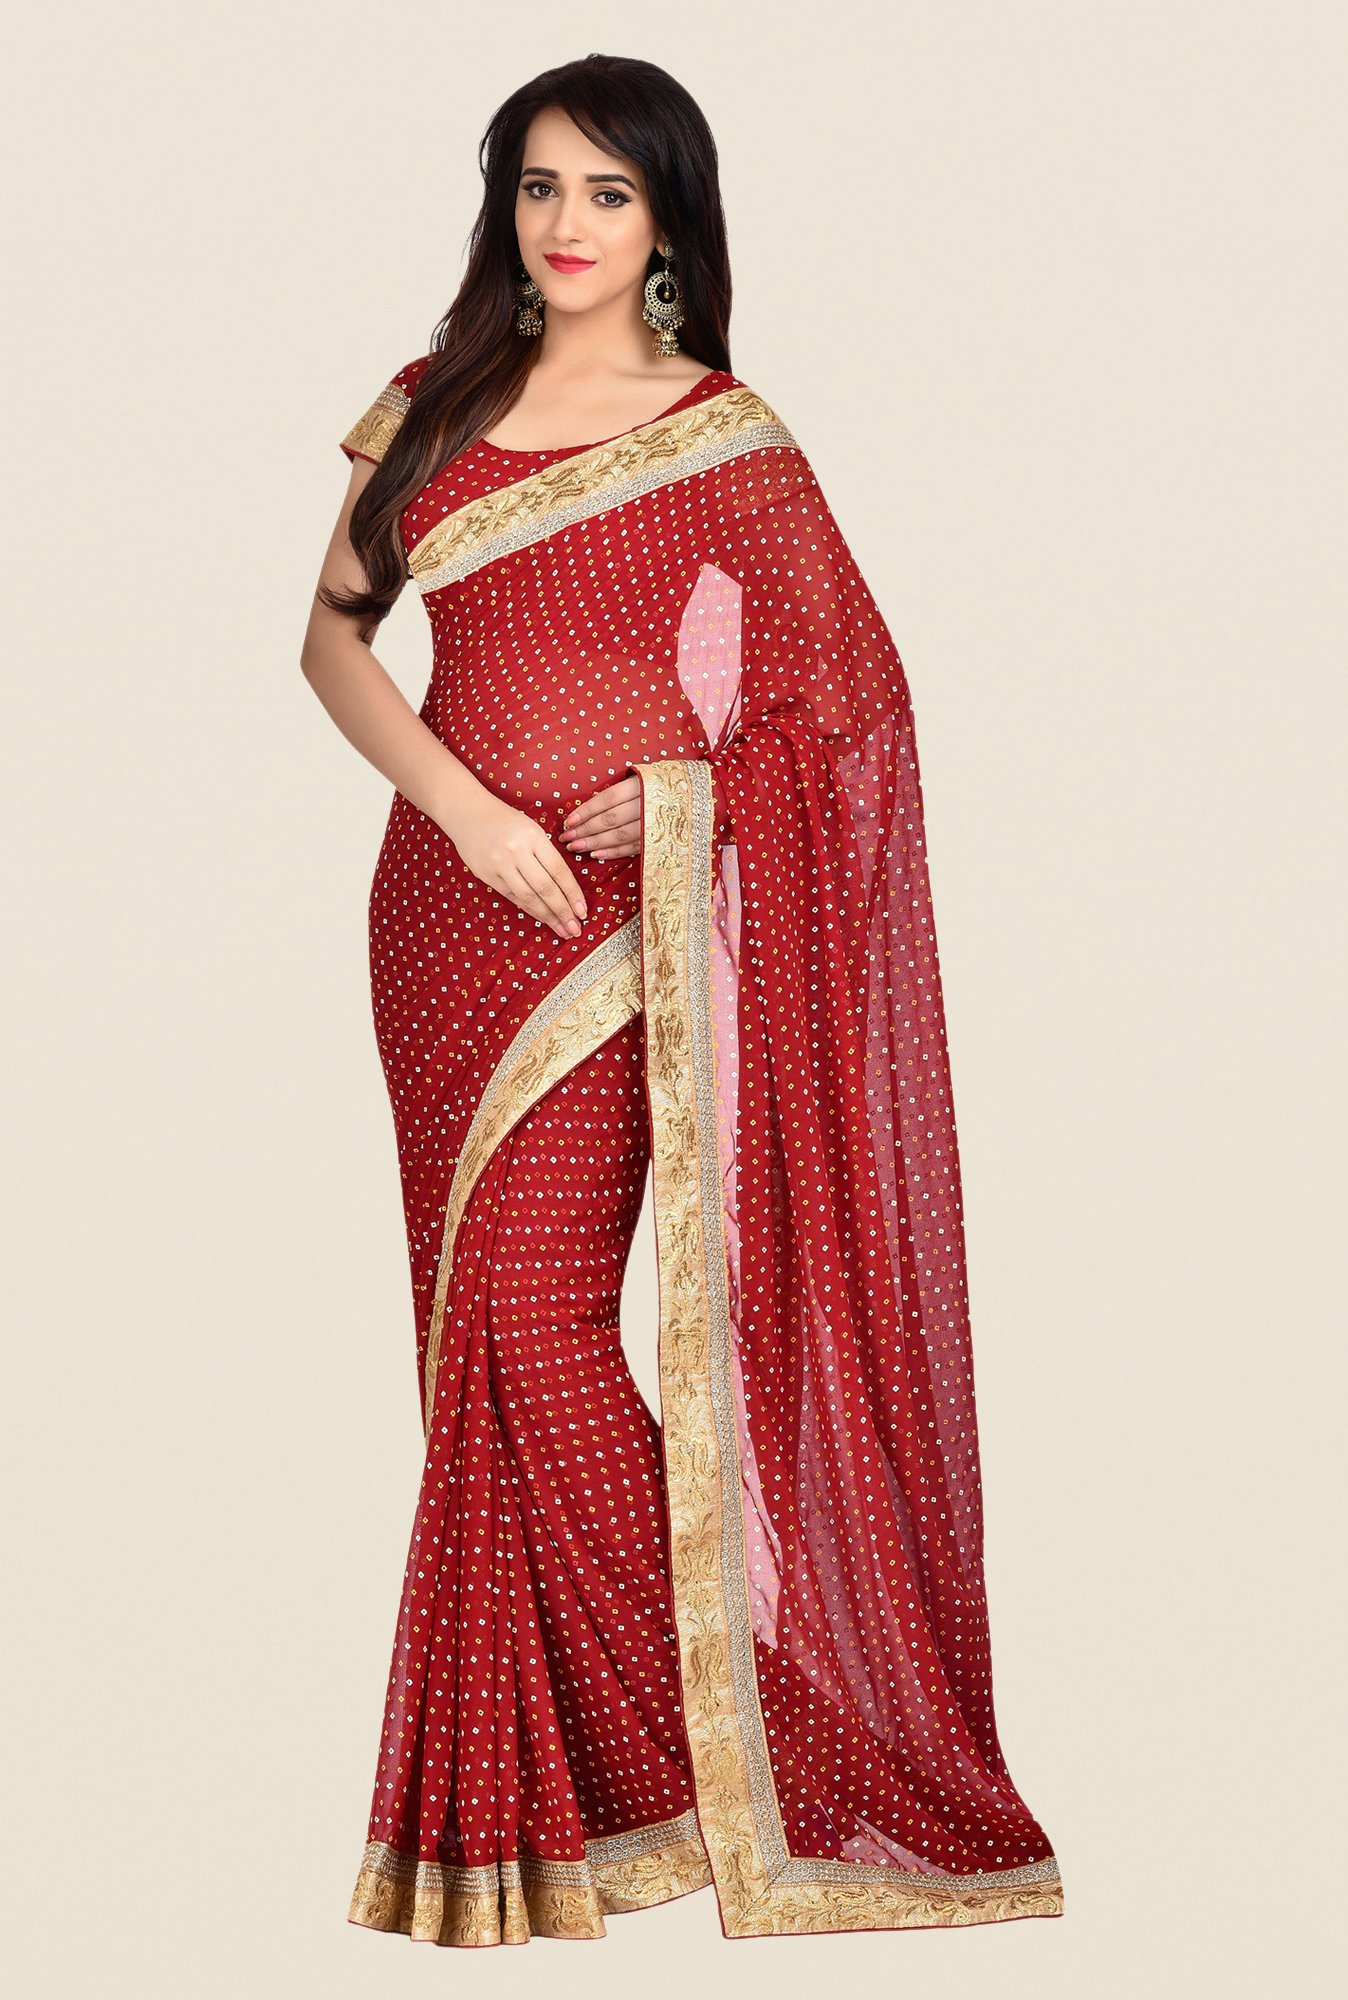 Shonaya Red Georgette Saree